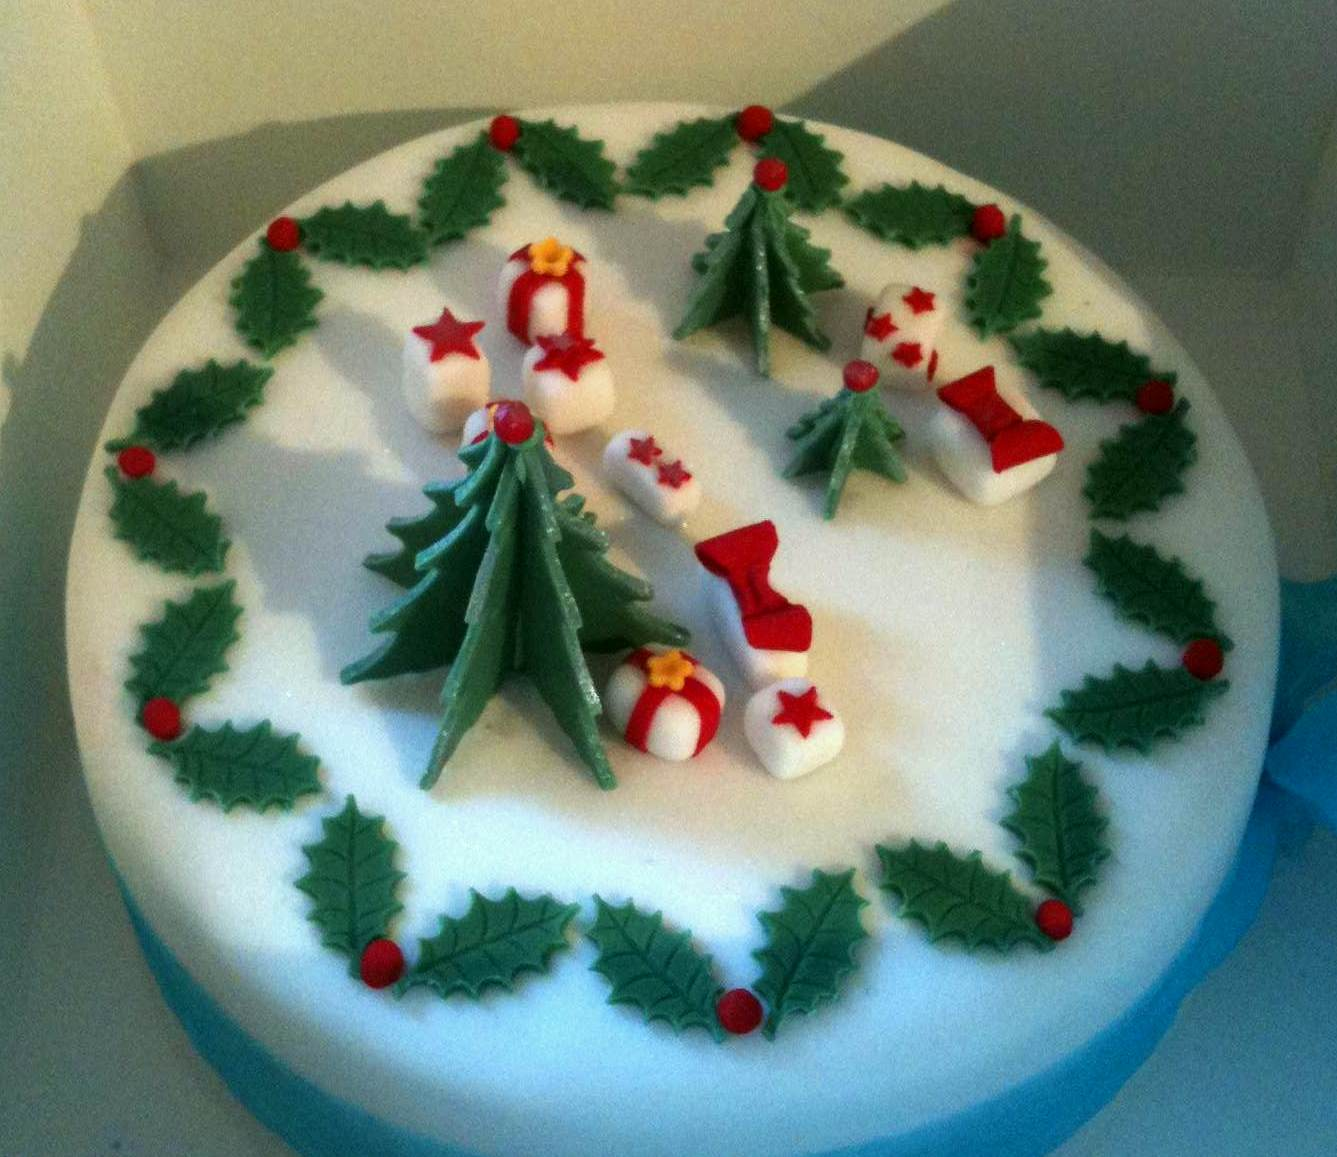 Images Of Christmas Cake Decorations : PicturesPool: Christmas Cakes Pictures Christmas Cakes ...